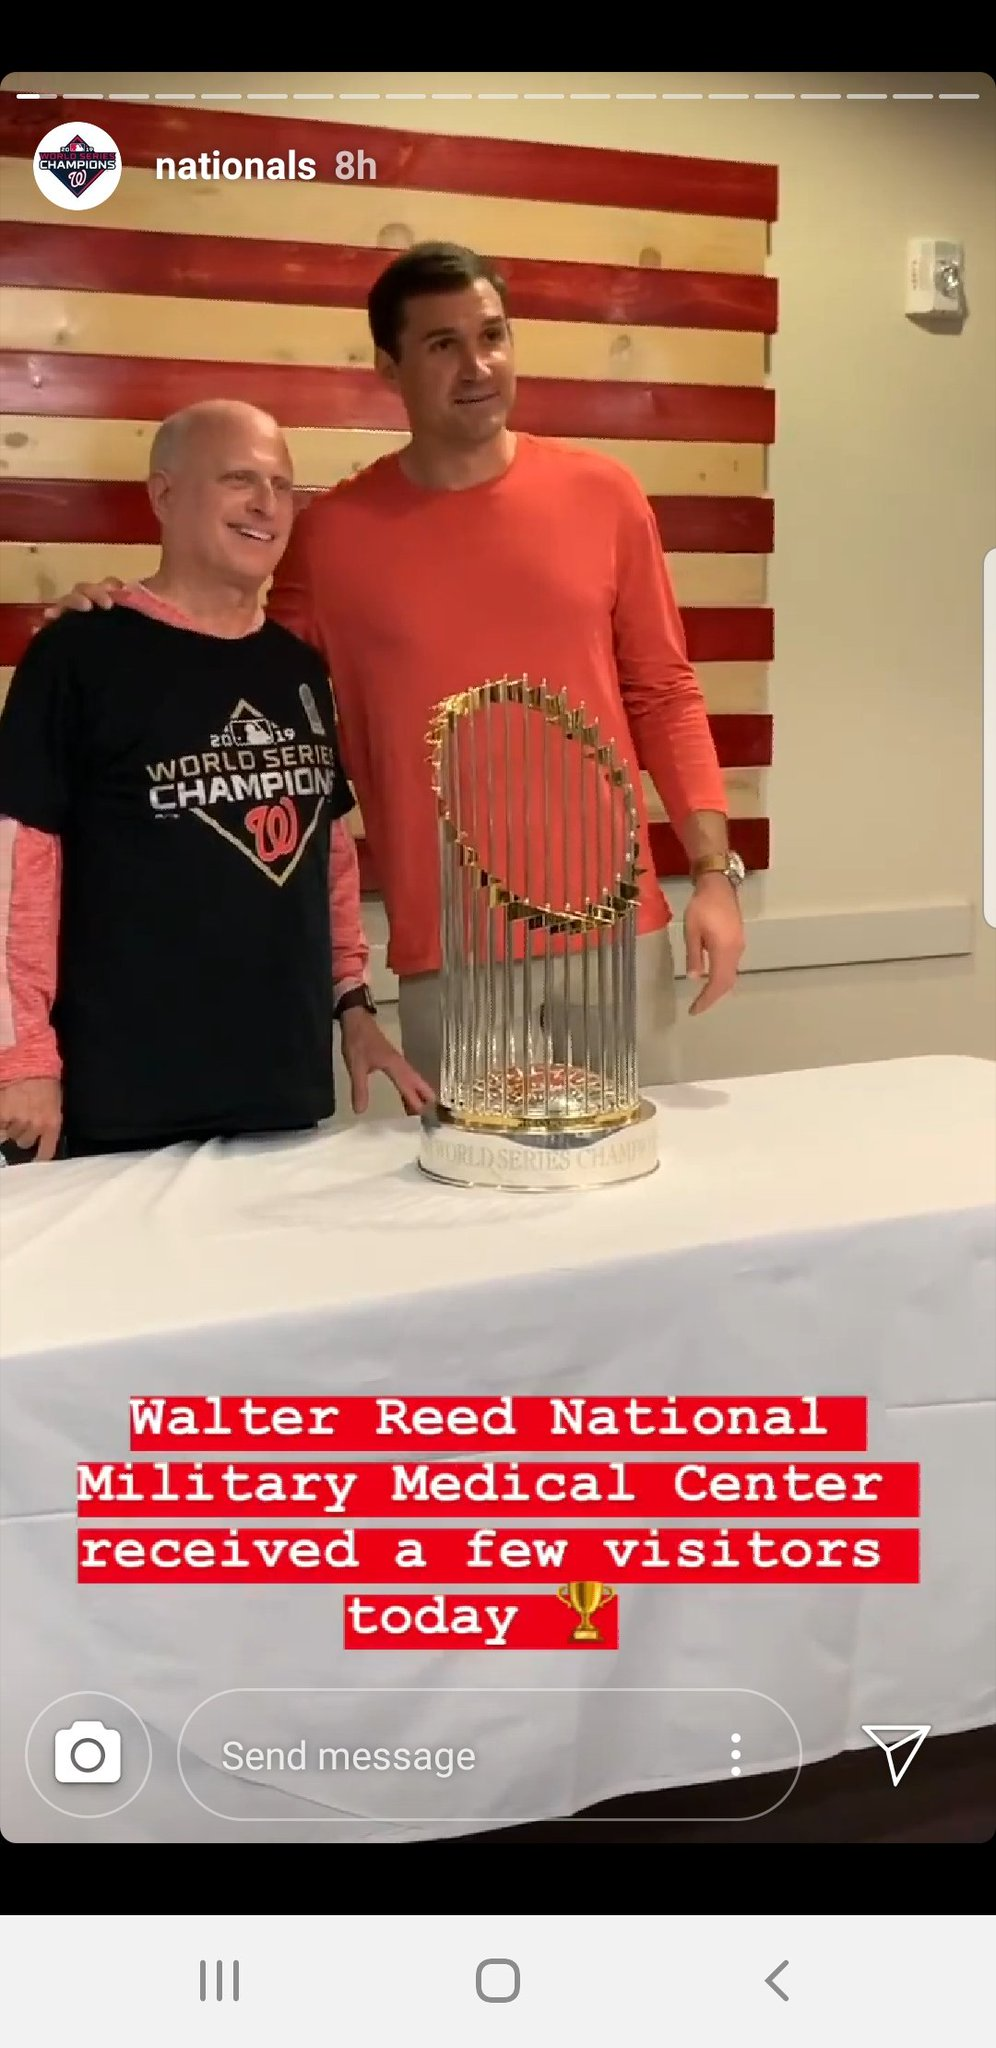 #Nats news... Walter Reed had a few visitors today https://t.co/oUChFAbL4Z